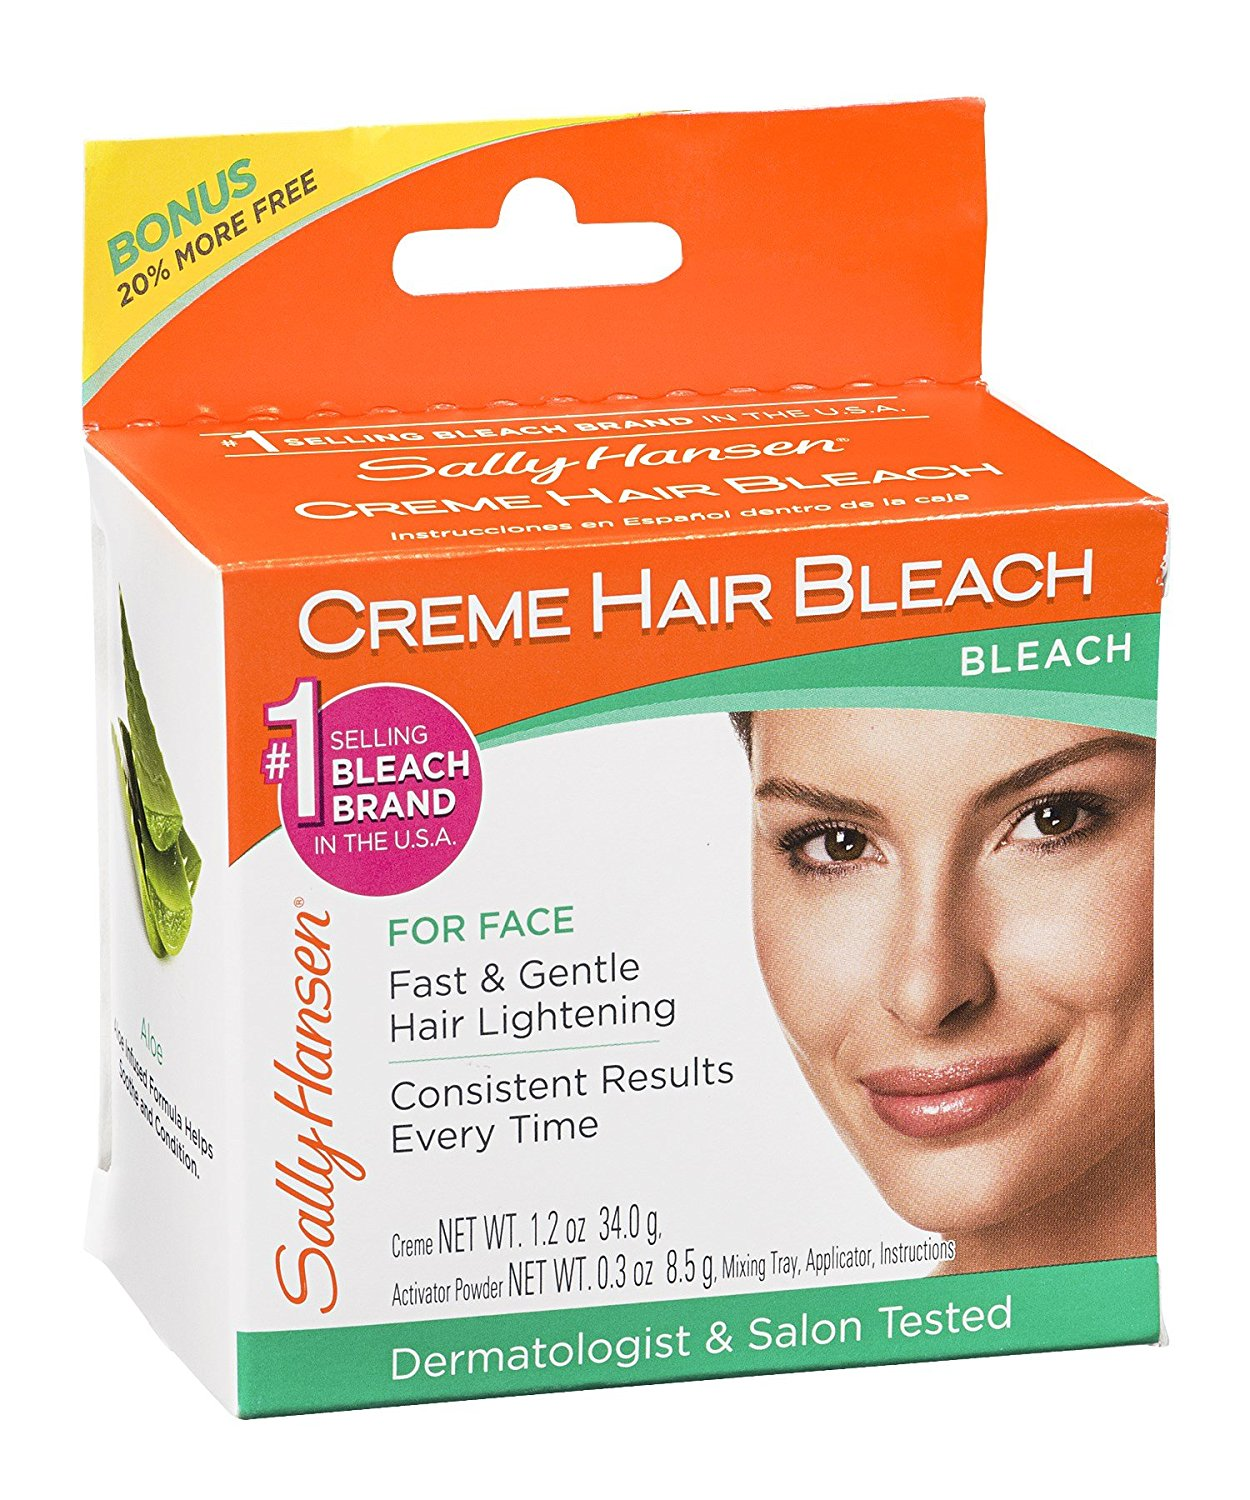 Sally Hansen Creme Hair Bleach for Face, 1.25-Ounce Package (pack of 4)